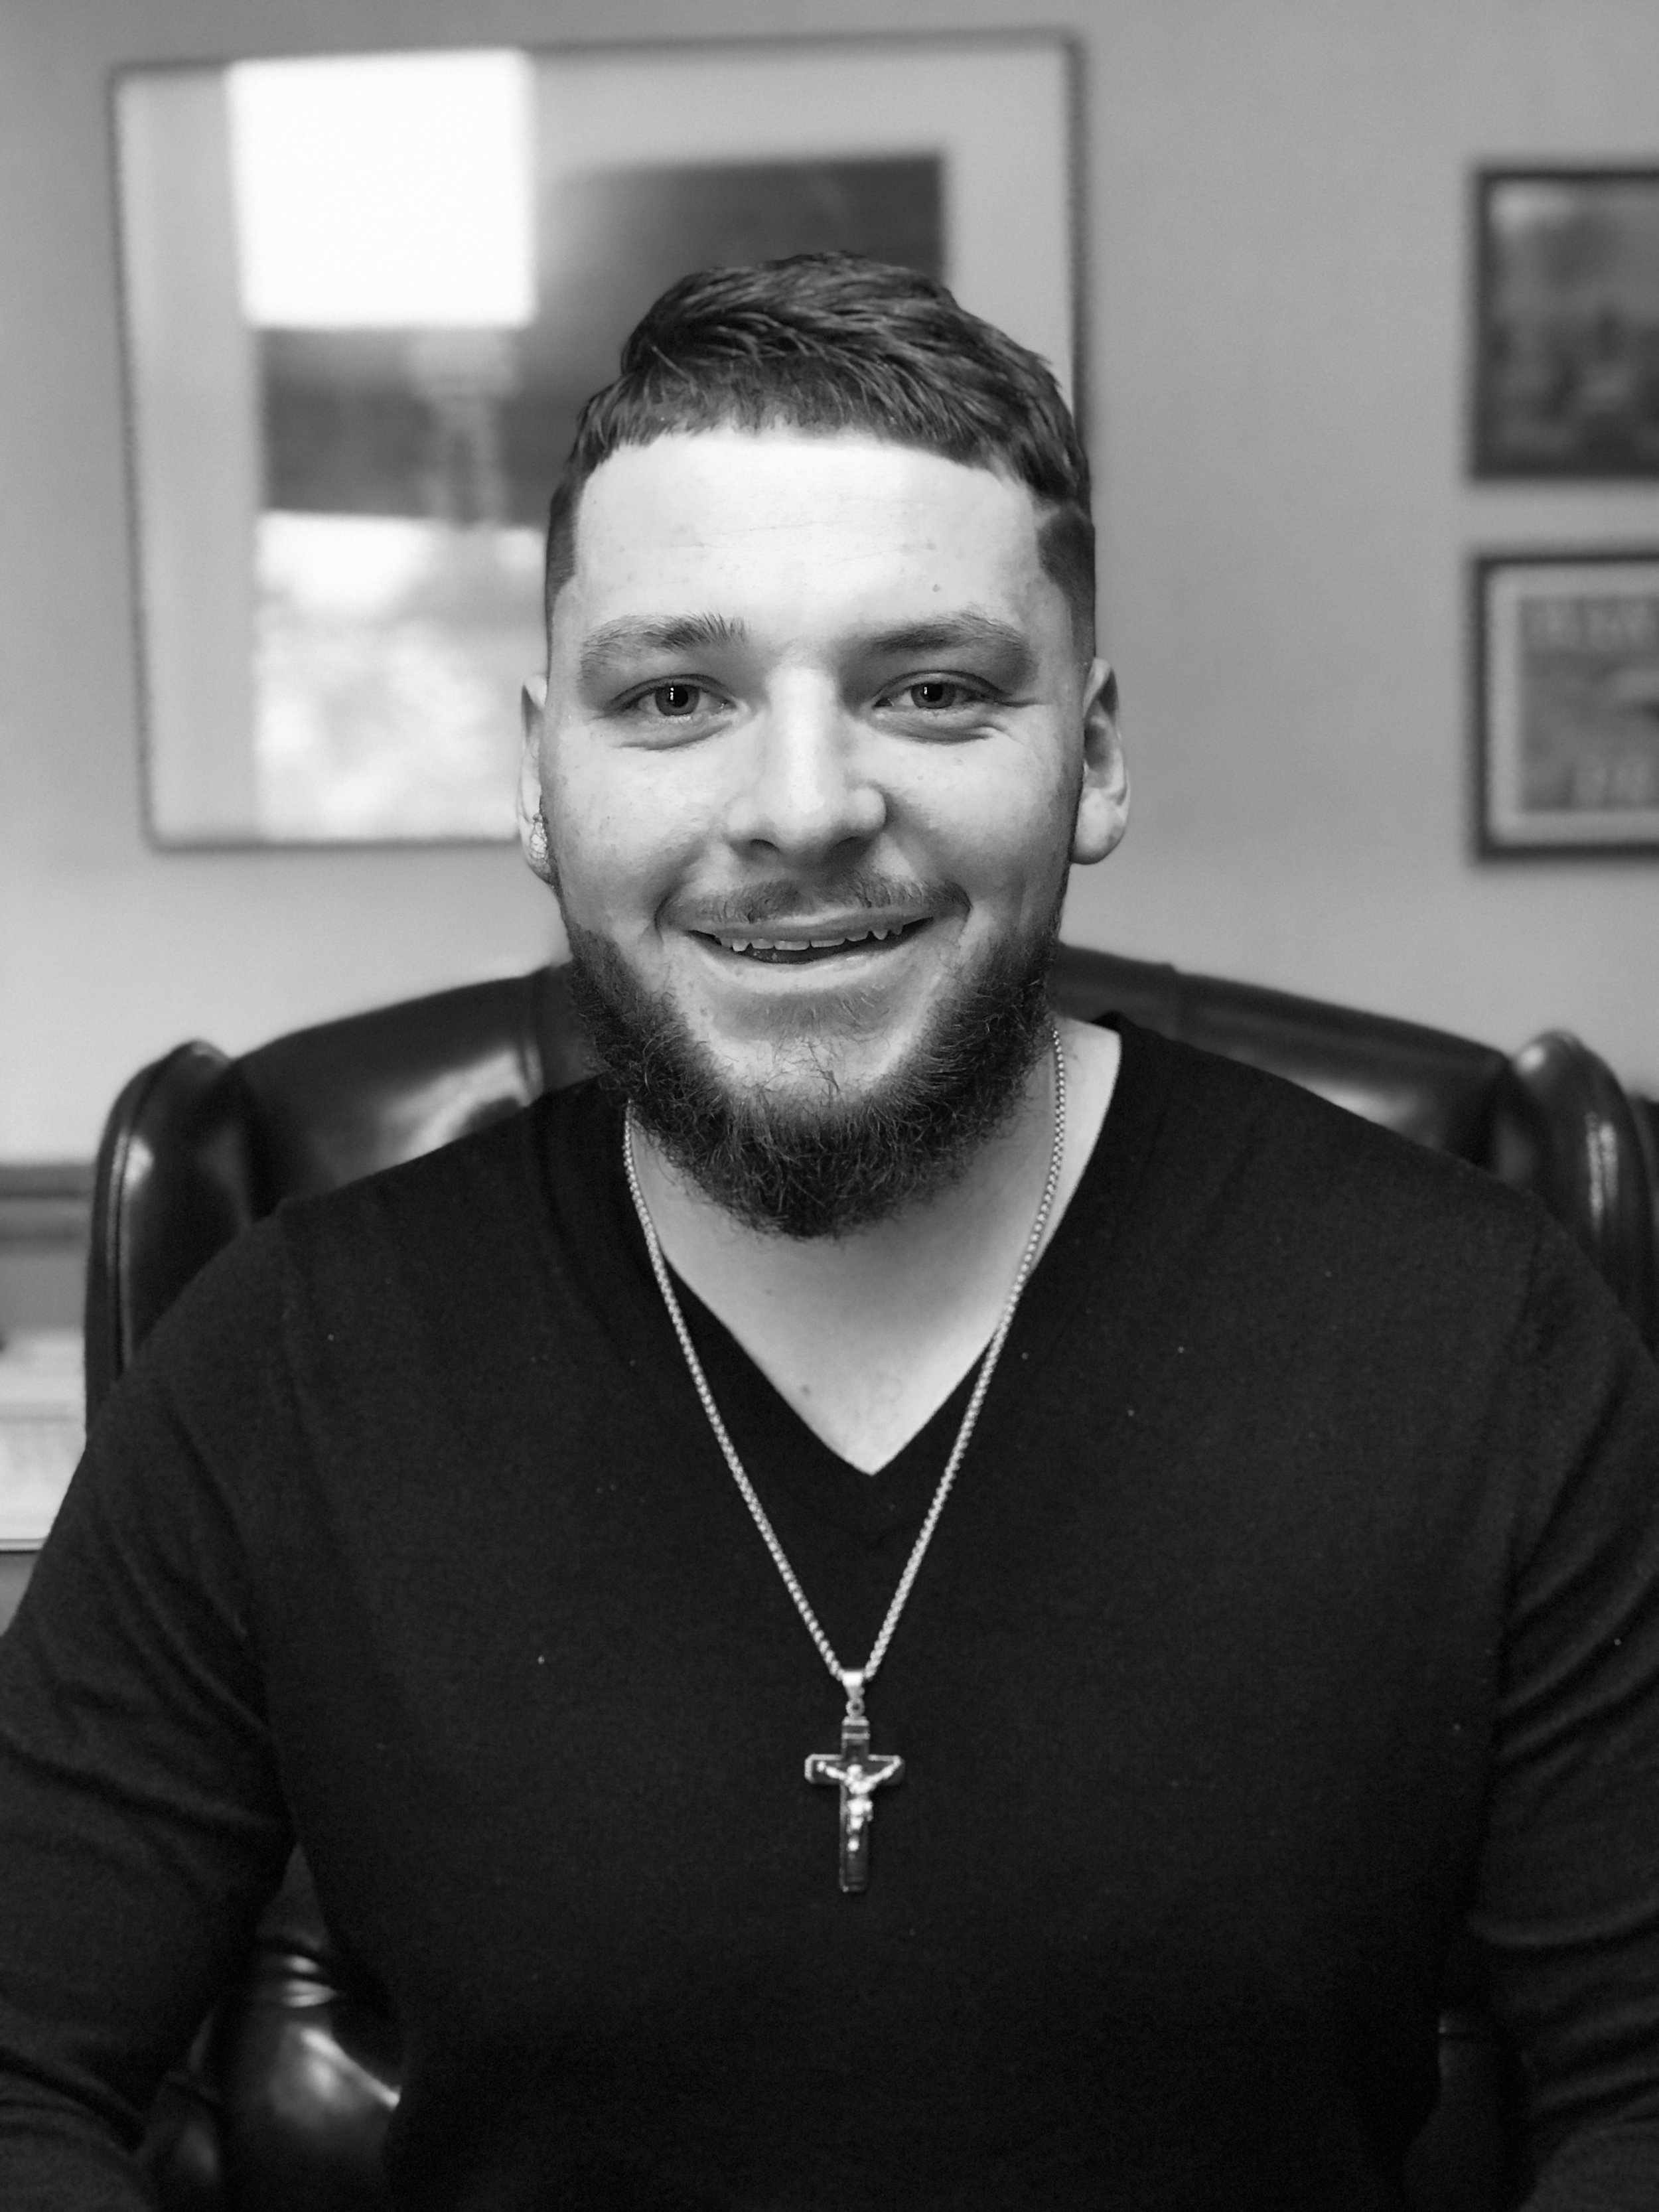 Robert has been with the Southwest Council, Inc. since January of 2018 and serves as an Alcohol, Tobacco, and Other Drug Prevention Specialist. Robert provides evidence-based school and community wide-programs in Cumberland, Gloucester, and Salem County. He also assists in facilitating Camp YEY.